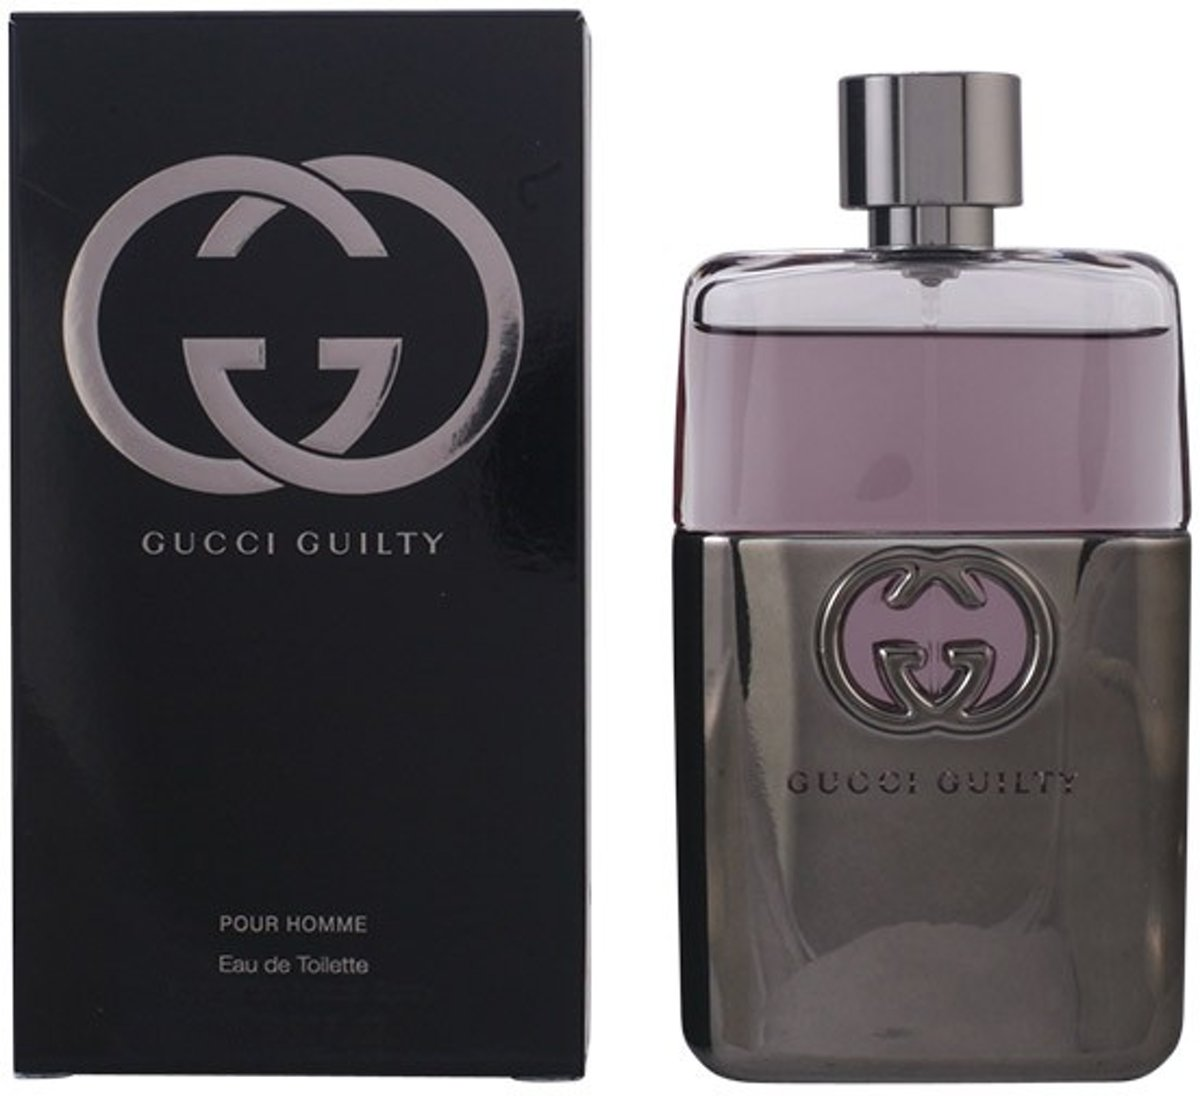 MULTI BUNDEL 3 stuks GUCCI GUILTY POUR HOMME Eau de Toilette Spray 90 ml